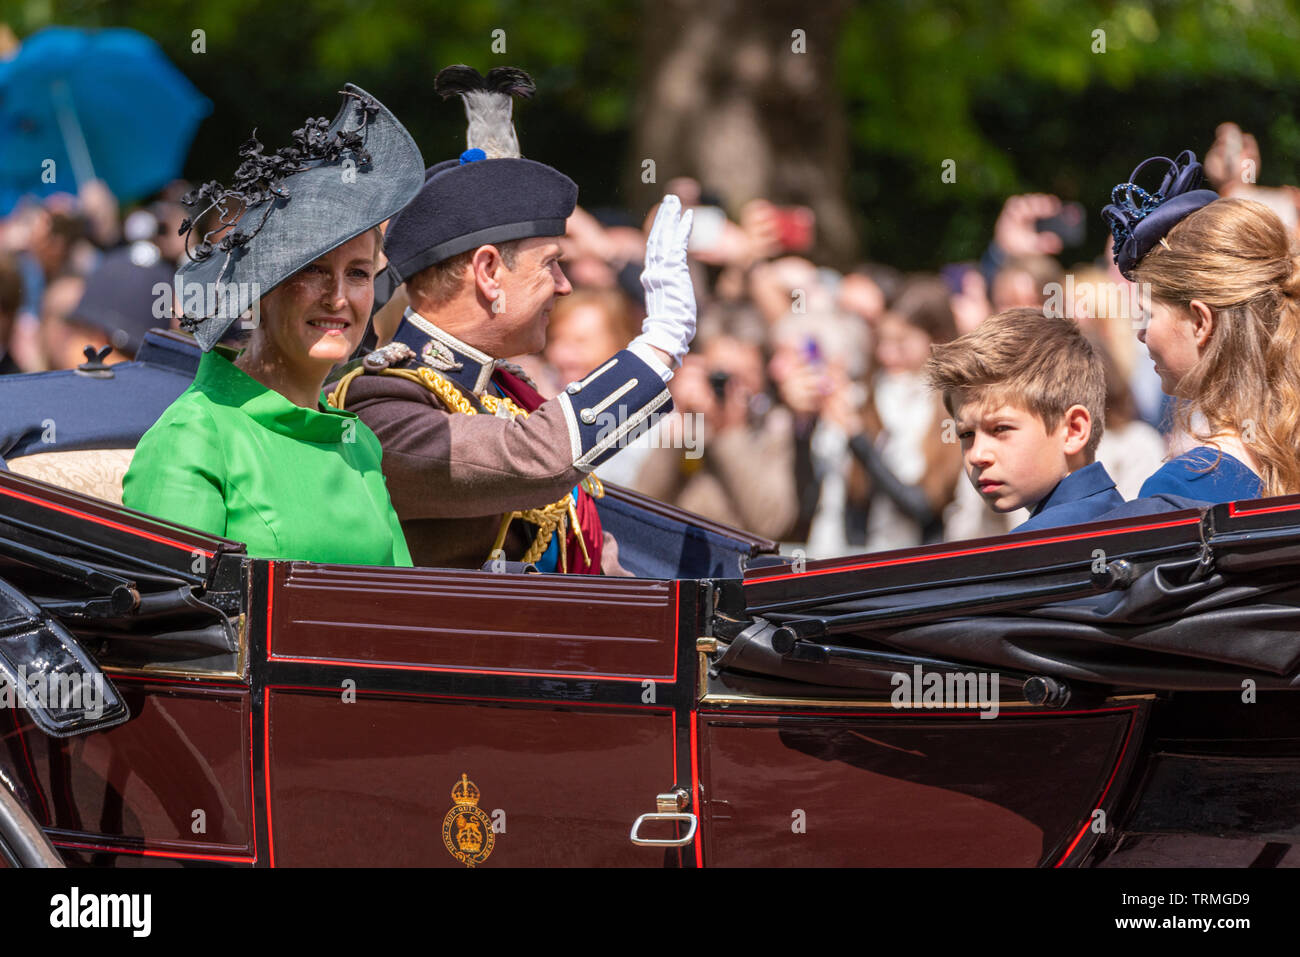 sophie-countess-of-wessex-with-prince-edward-james-viscount-severn-and-lady-louise-windsor-at-trooping-the-colour-in-carriage-on-the-mall-london-TRMGD9.jpg